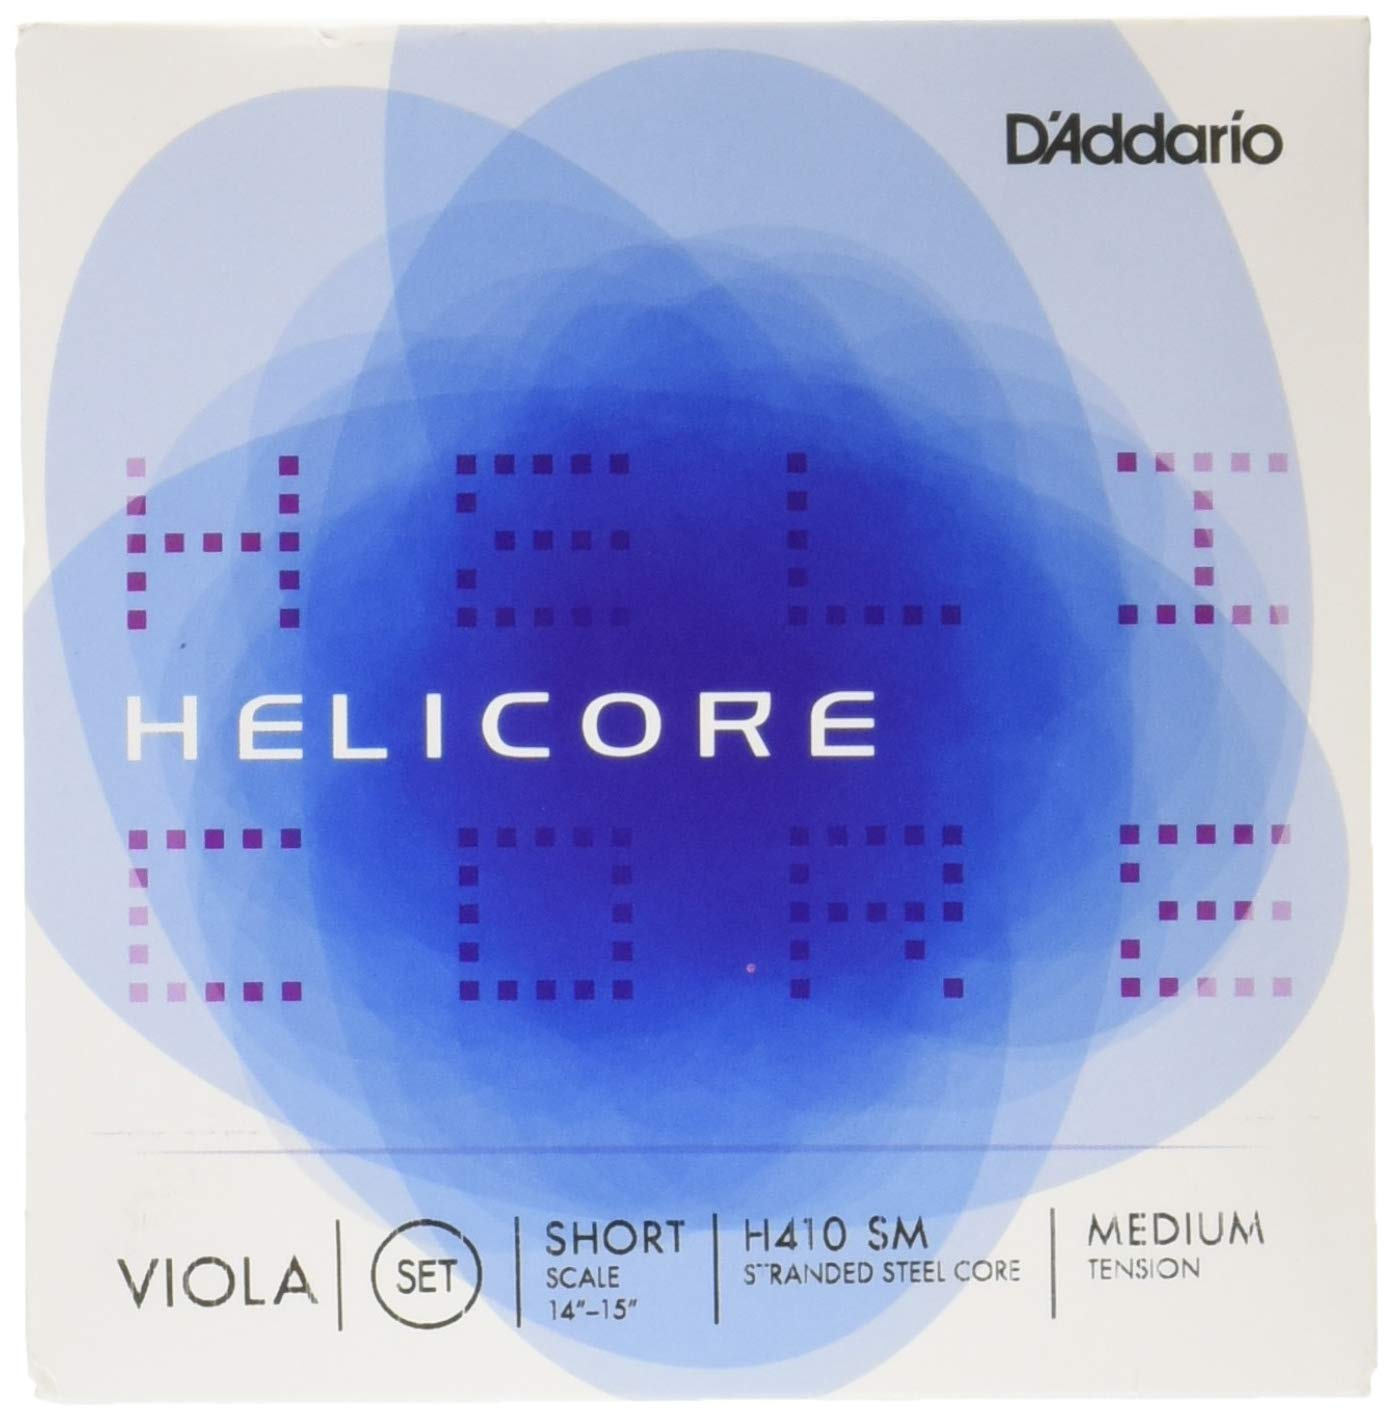 D'Addario Helicore Viola String Set, Long Scale, Medium Tension D'Addario &Co. Inc H410 LM